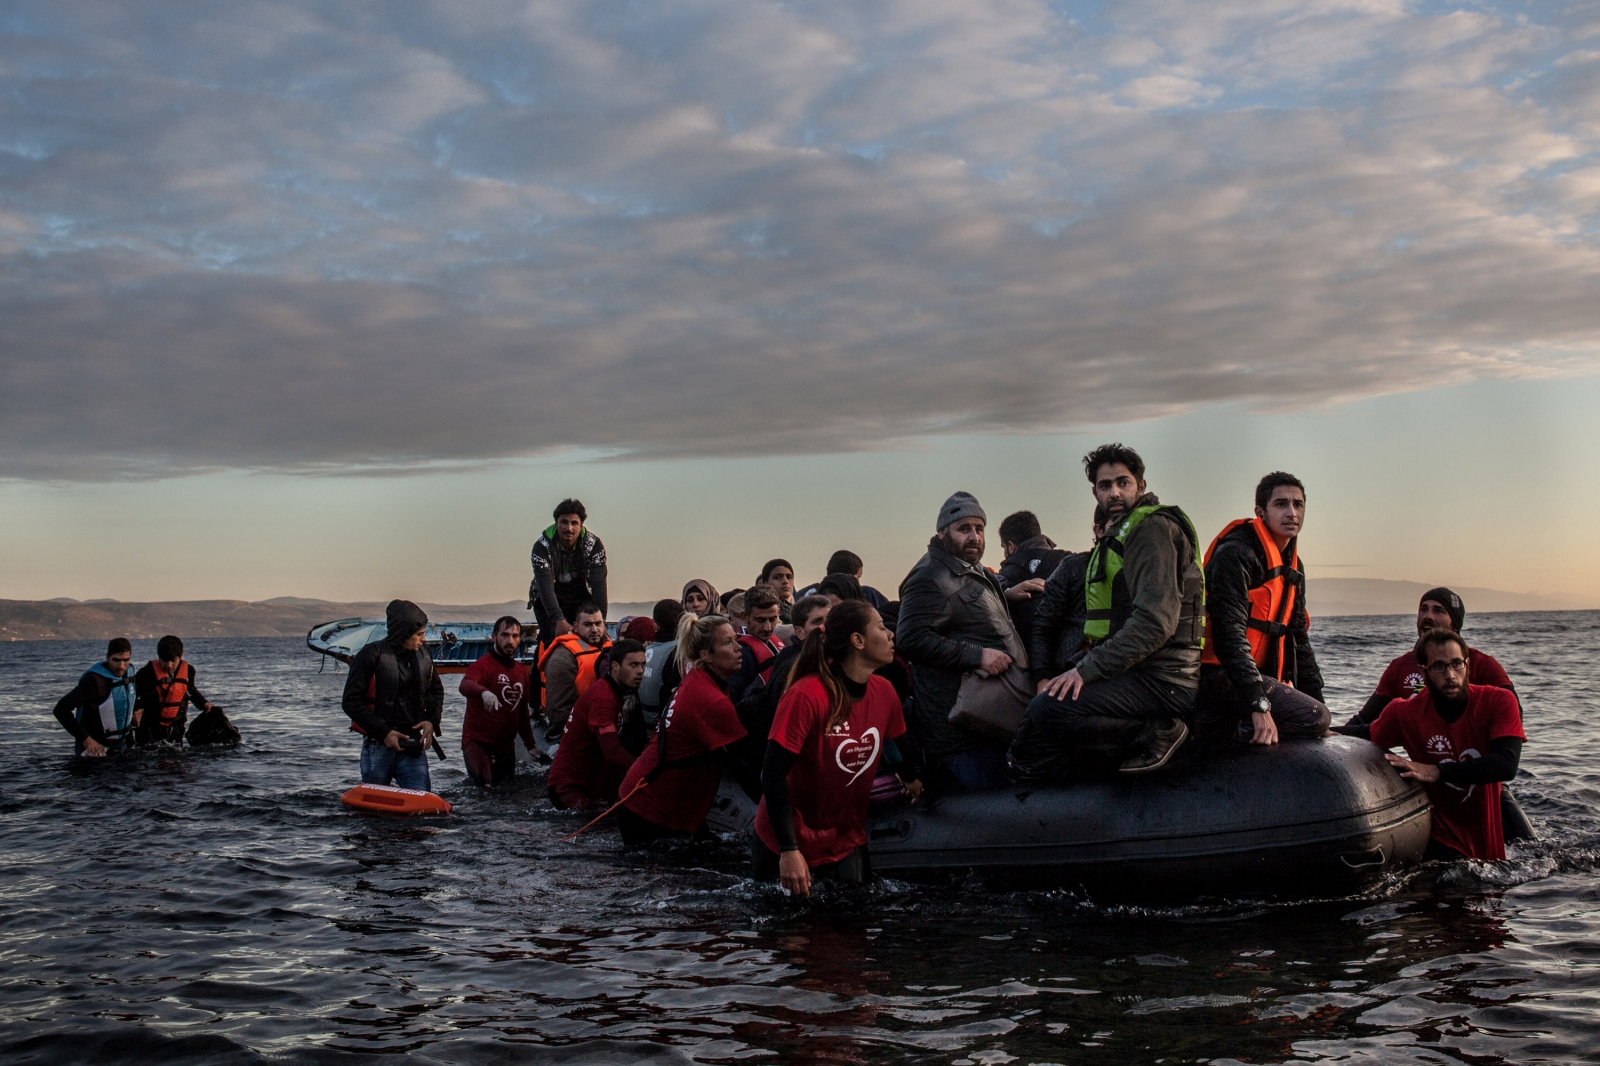 A boat filled with refugees and migrants, mostly from Syria, arrives on the shores of Lesbos, Greece, after crossing the Aegean Sea from Turkey on December 4, 2015.